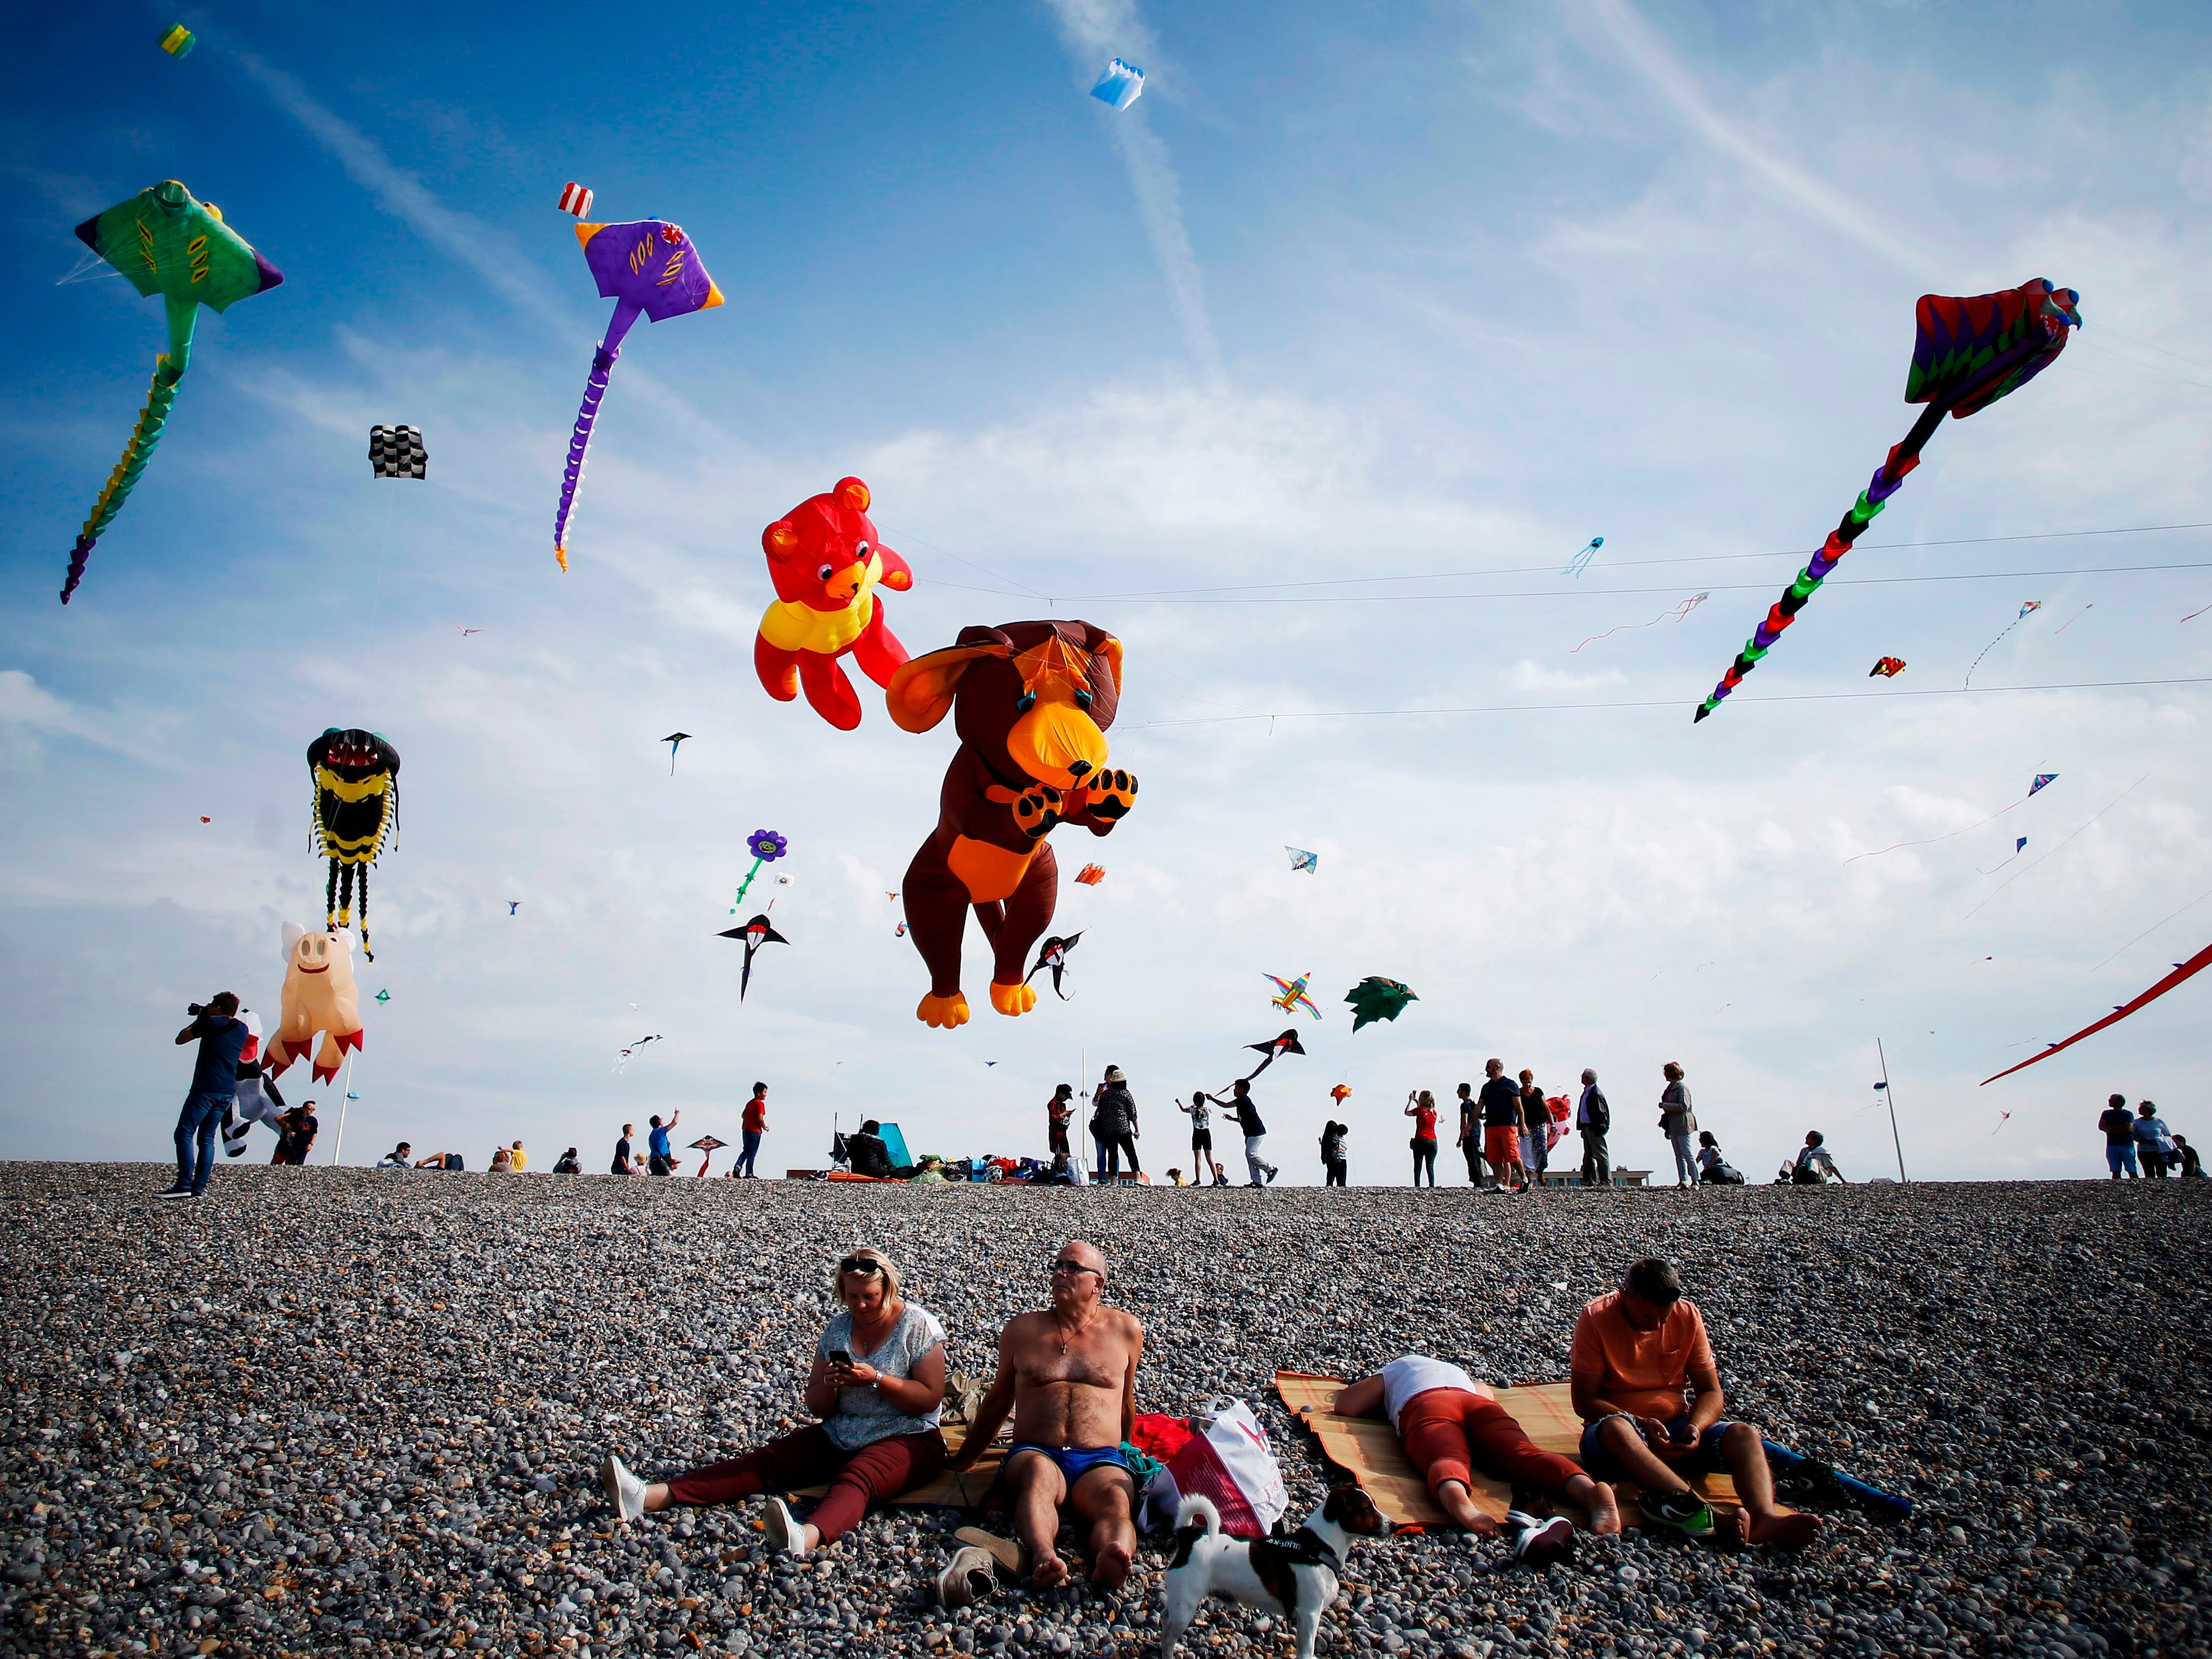 People fly kites on a beach while others sunbathe during the 20th edition of the International Dieppe Kite Festival on September 9, 2018, in Dieppe, northwestern France.